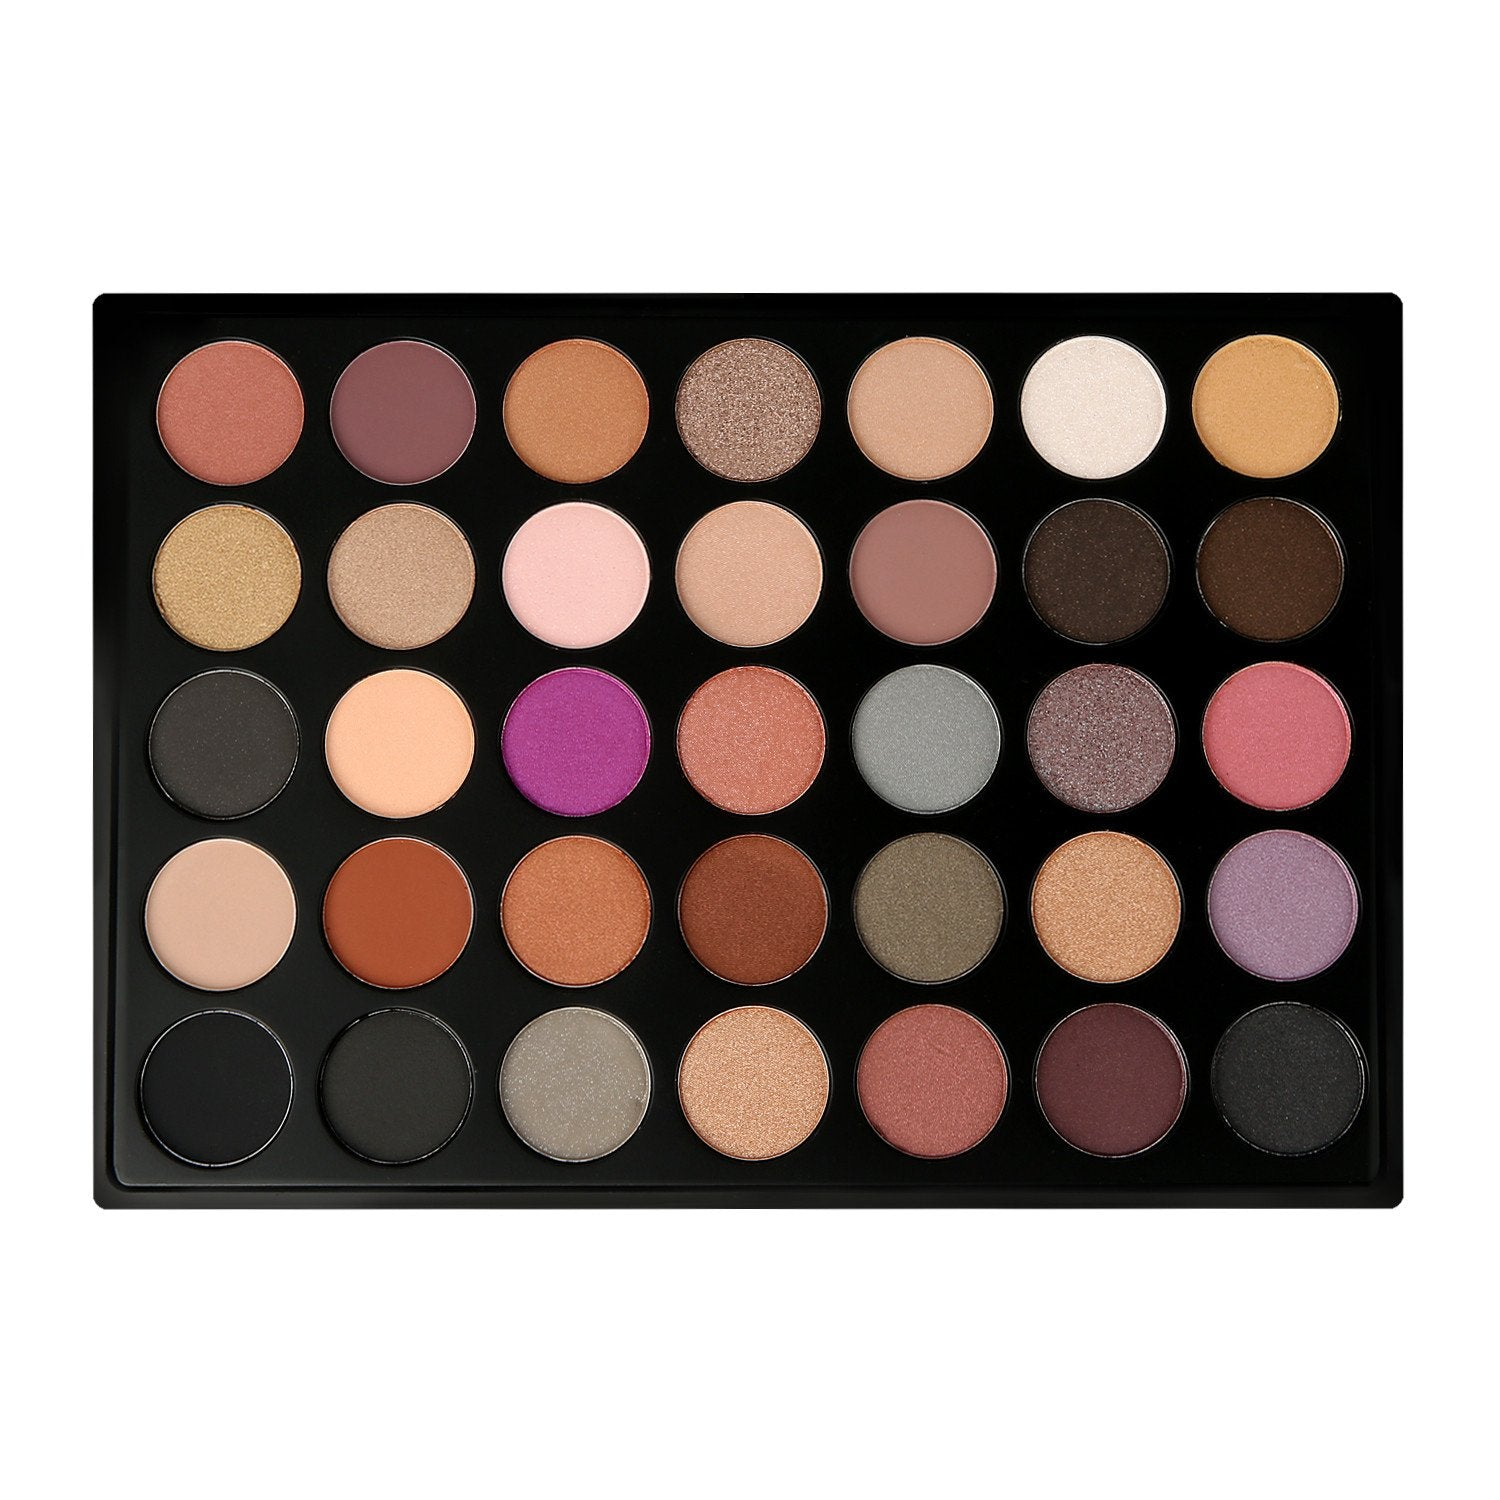 35I EYESHADOW PALETTE